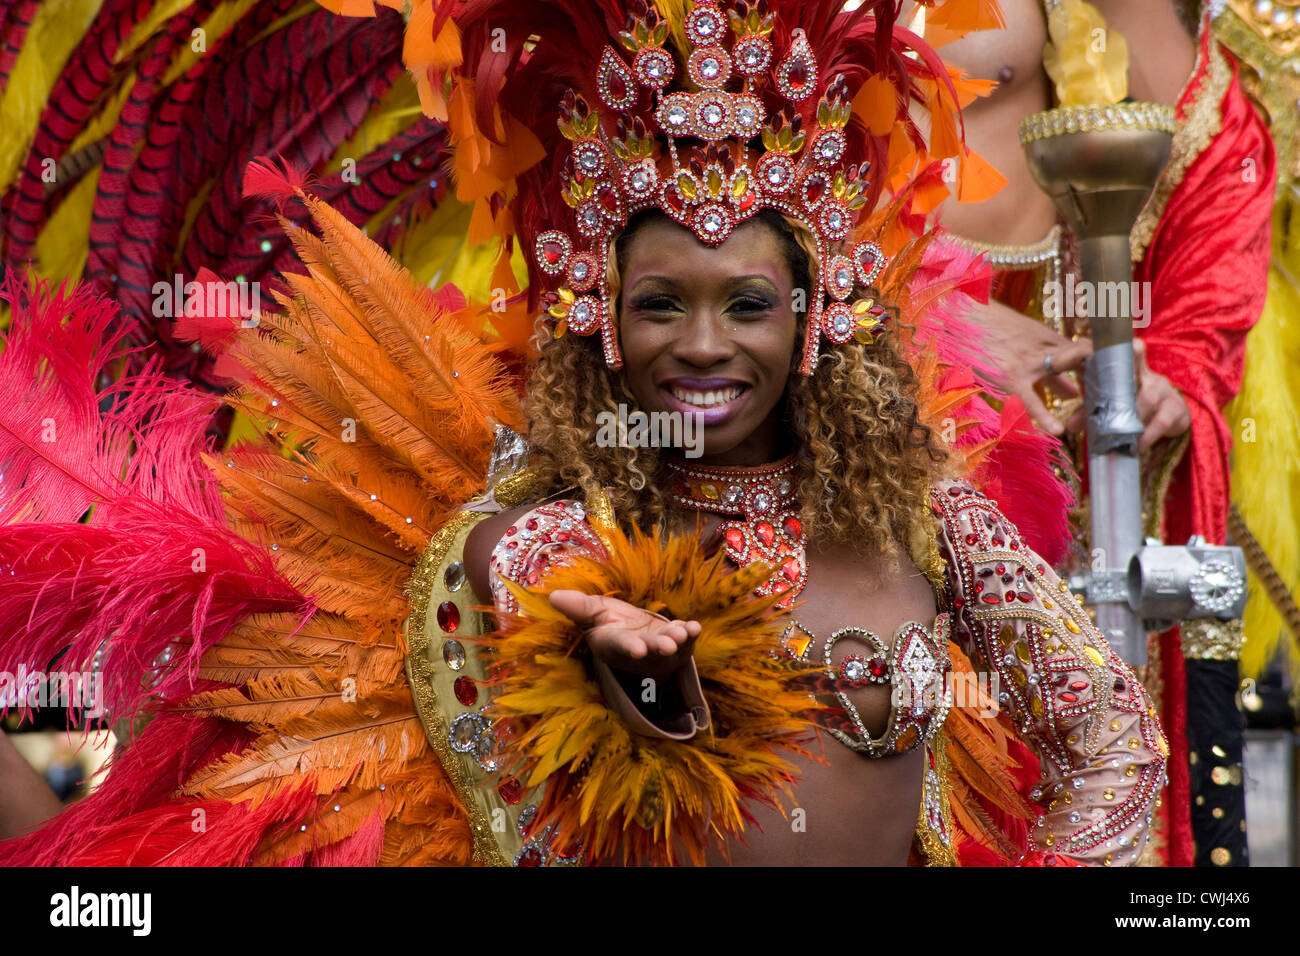 Nottinghill Carnival 2012 - Stock Image